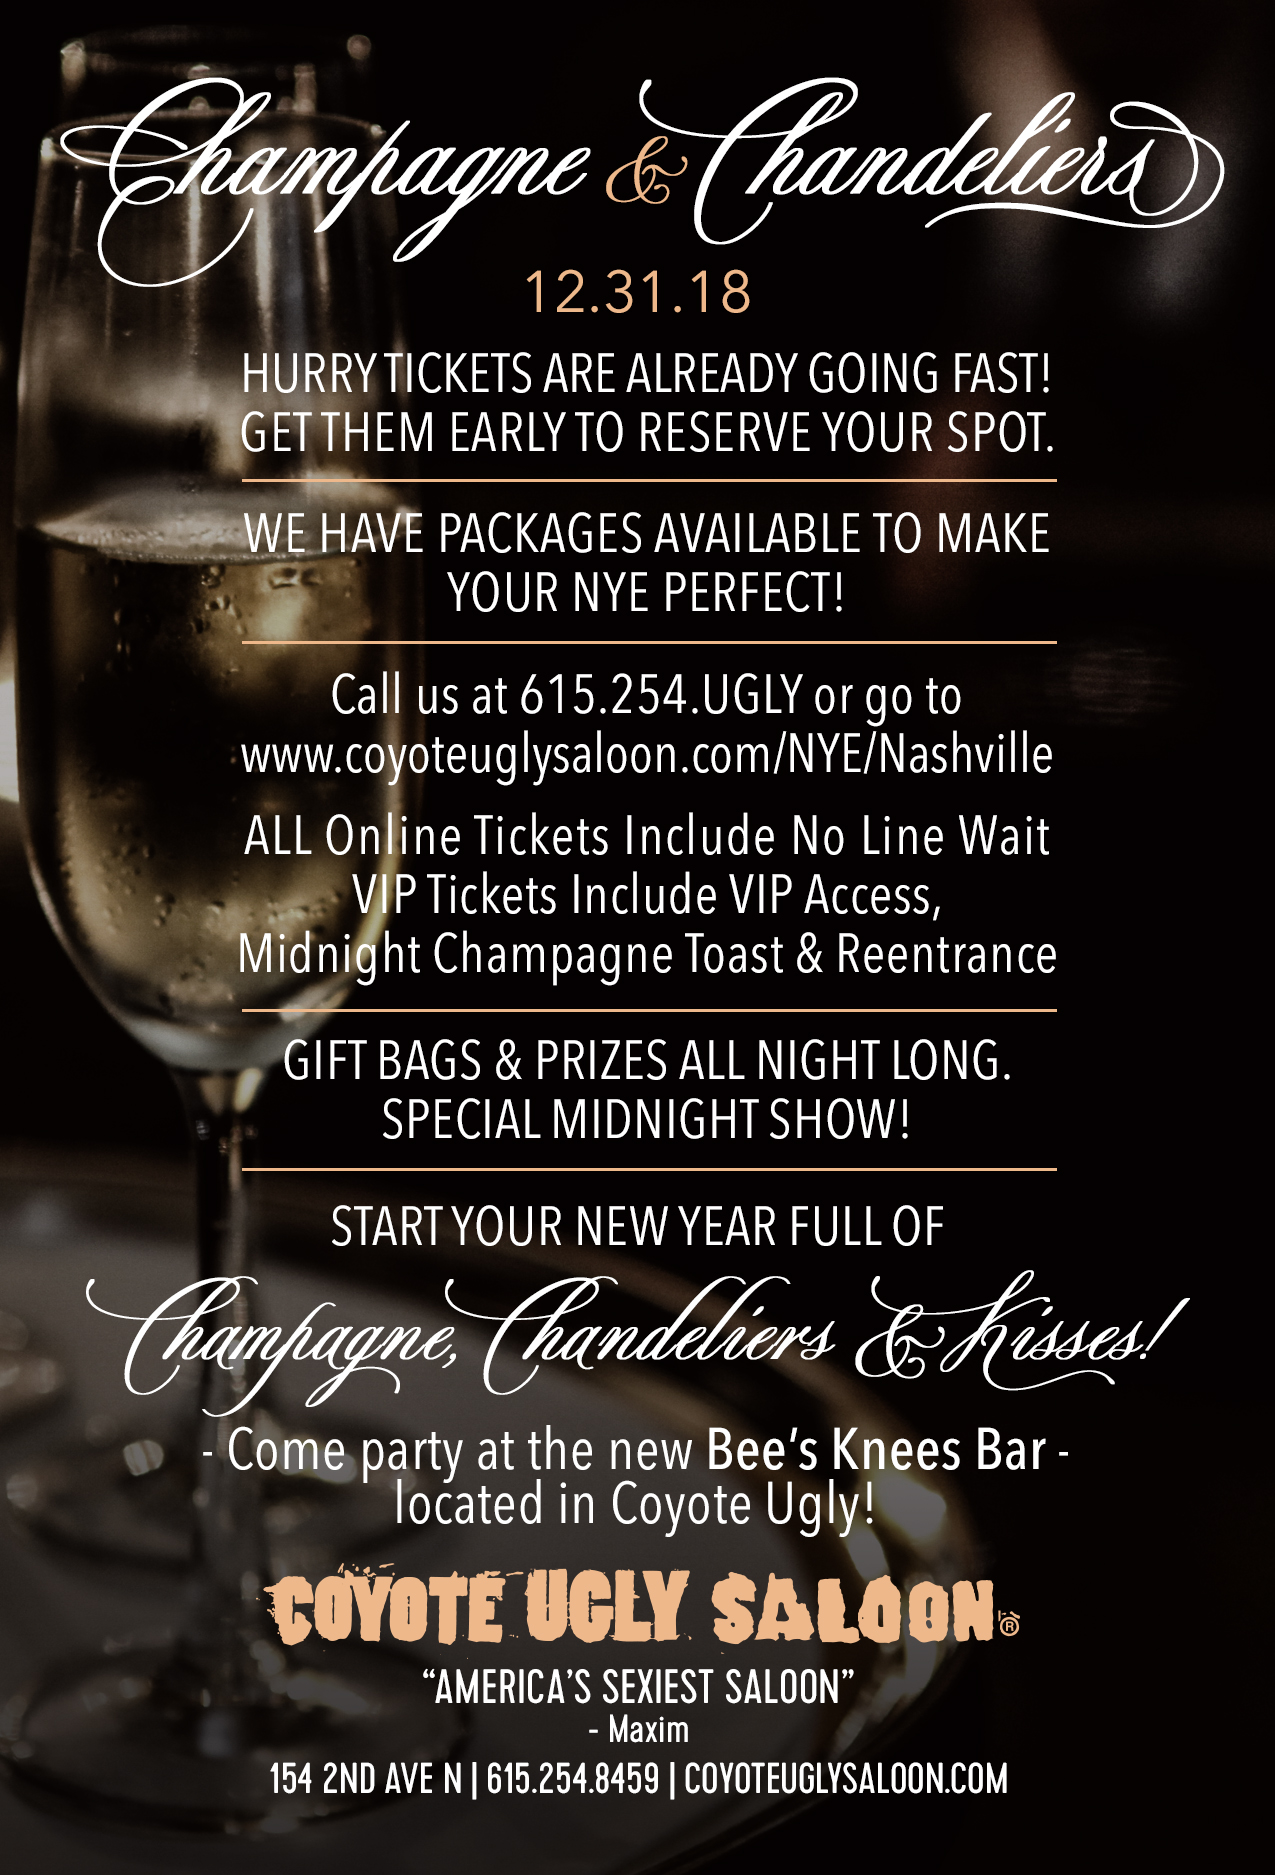 New Year's Eve – Champagne & Chandeliers in Nashville on December 31, 2018